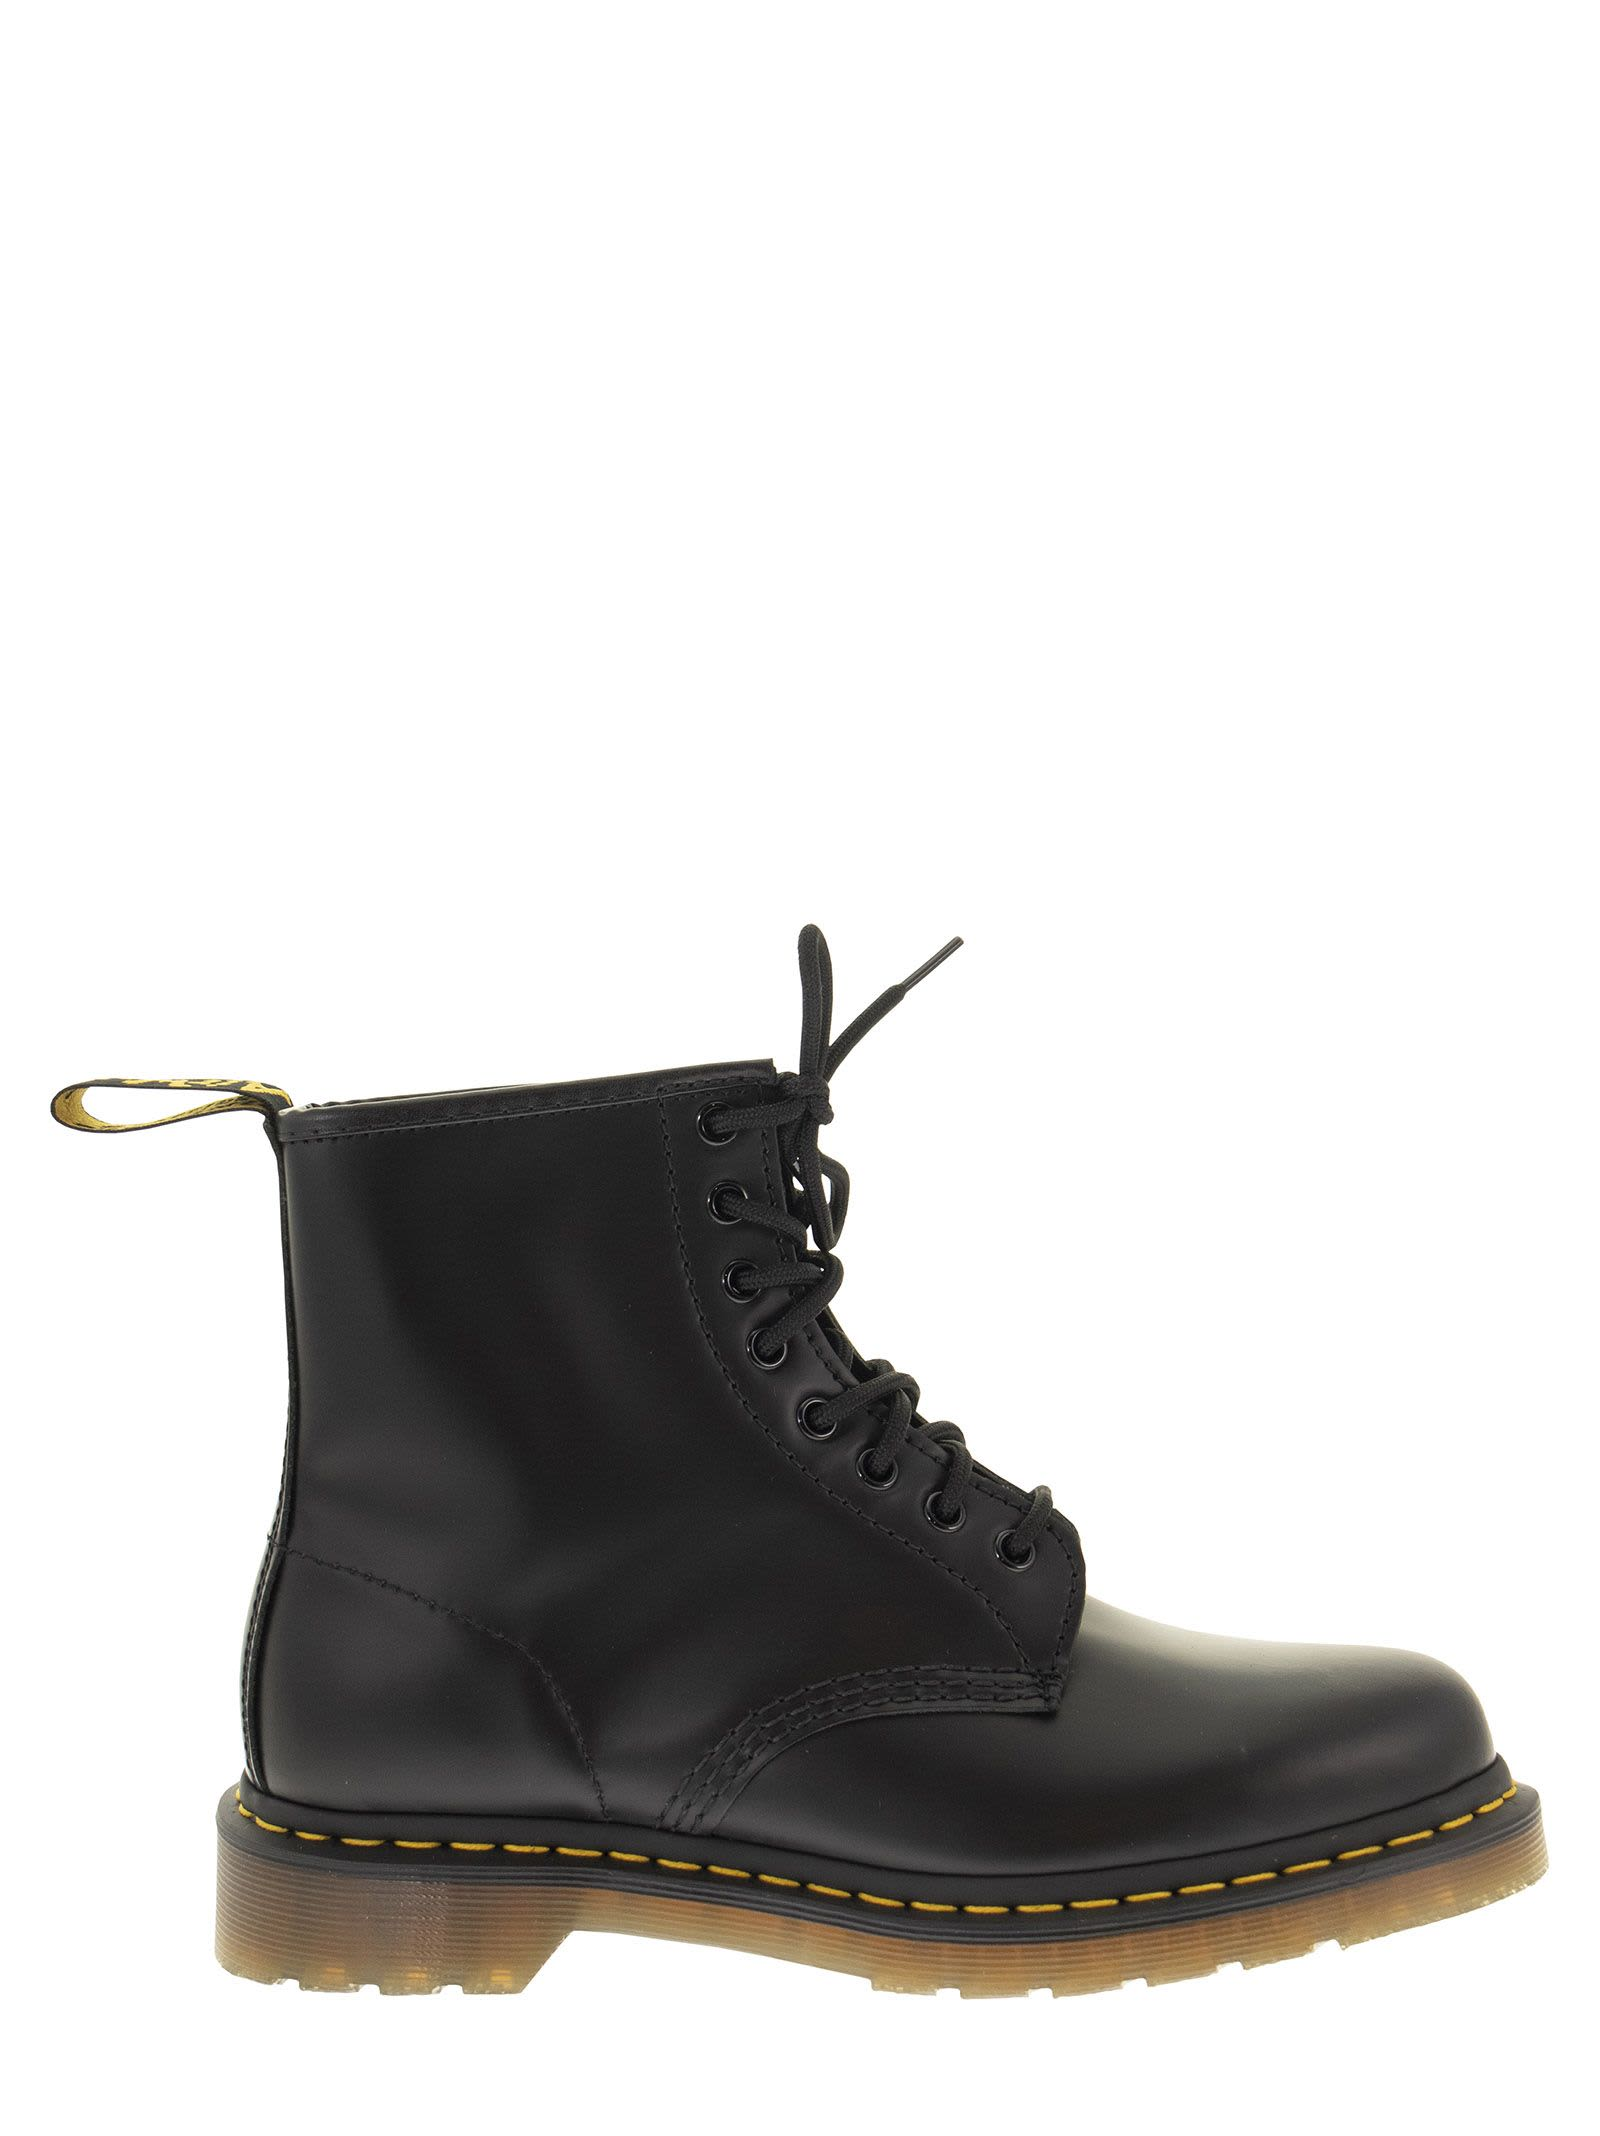 Dr. Martens 1460 Smooth - Lace-up Boot